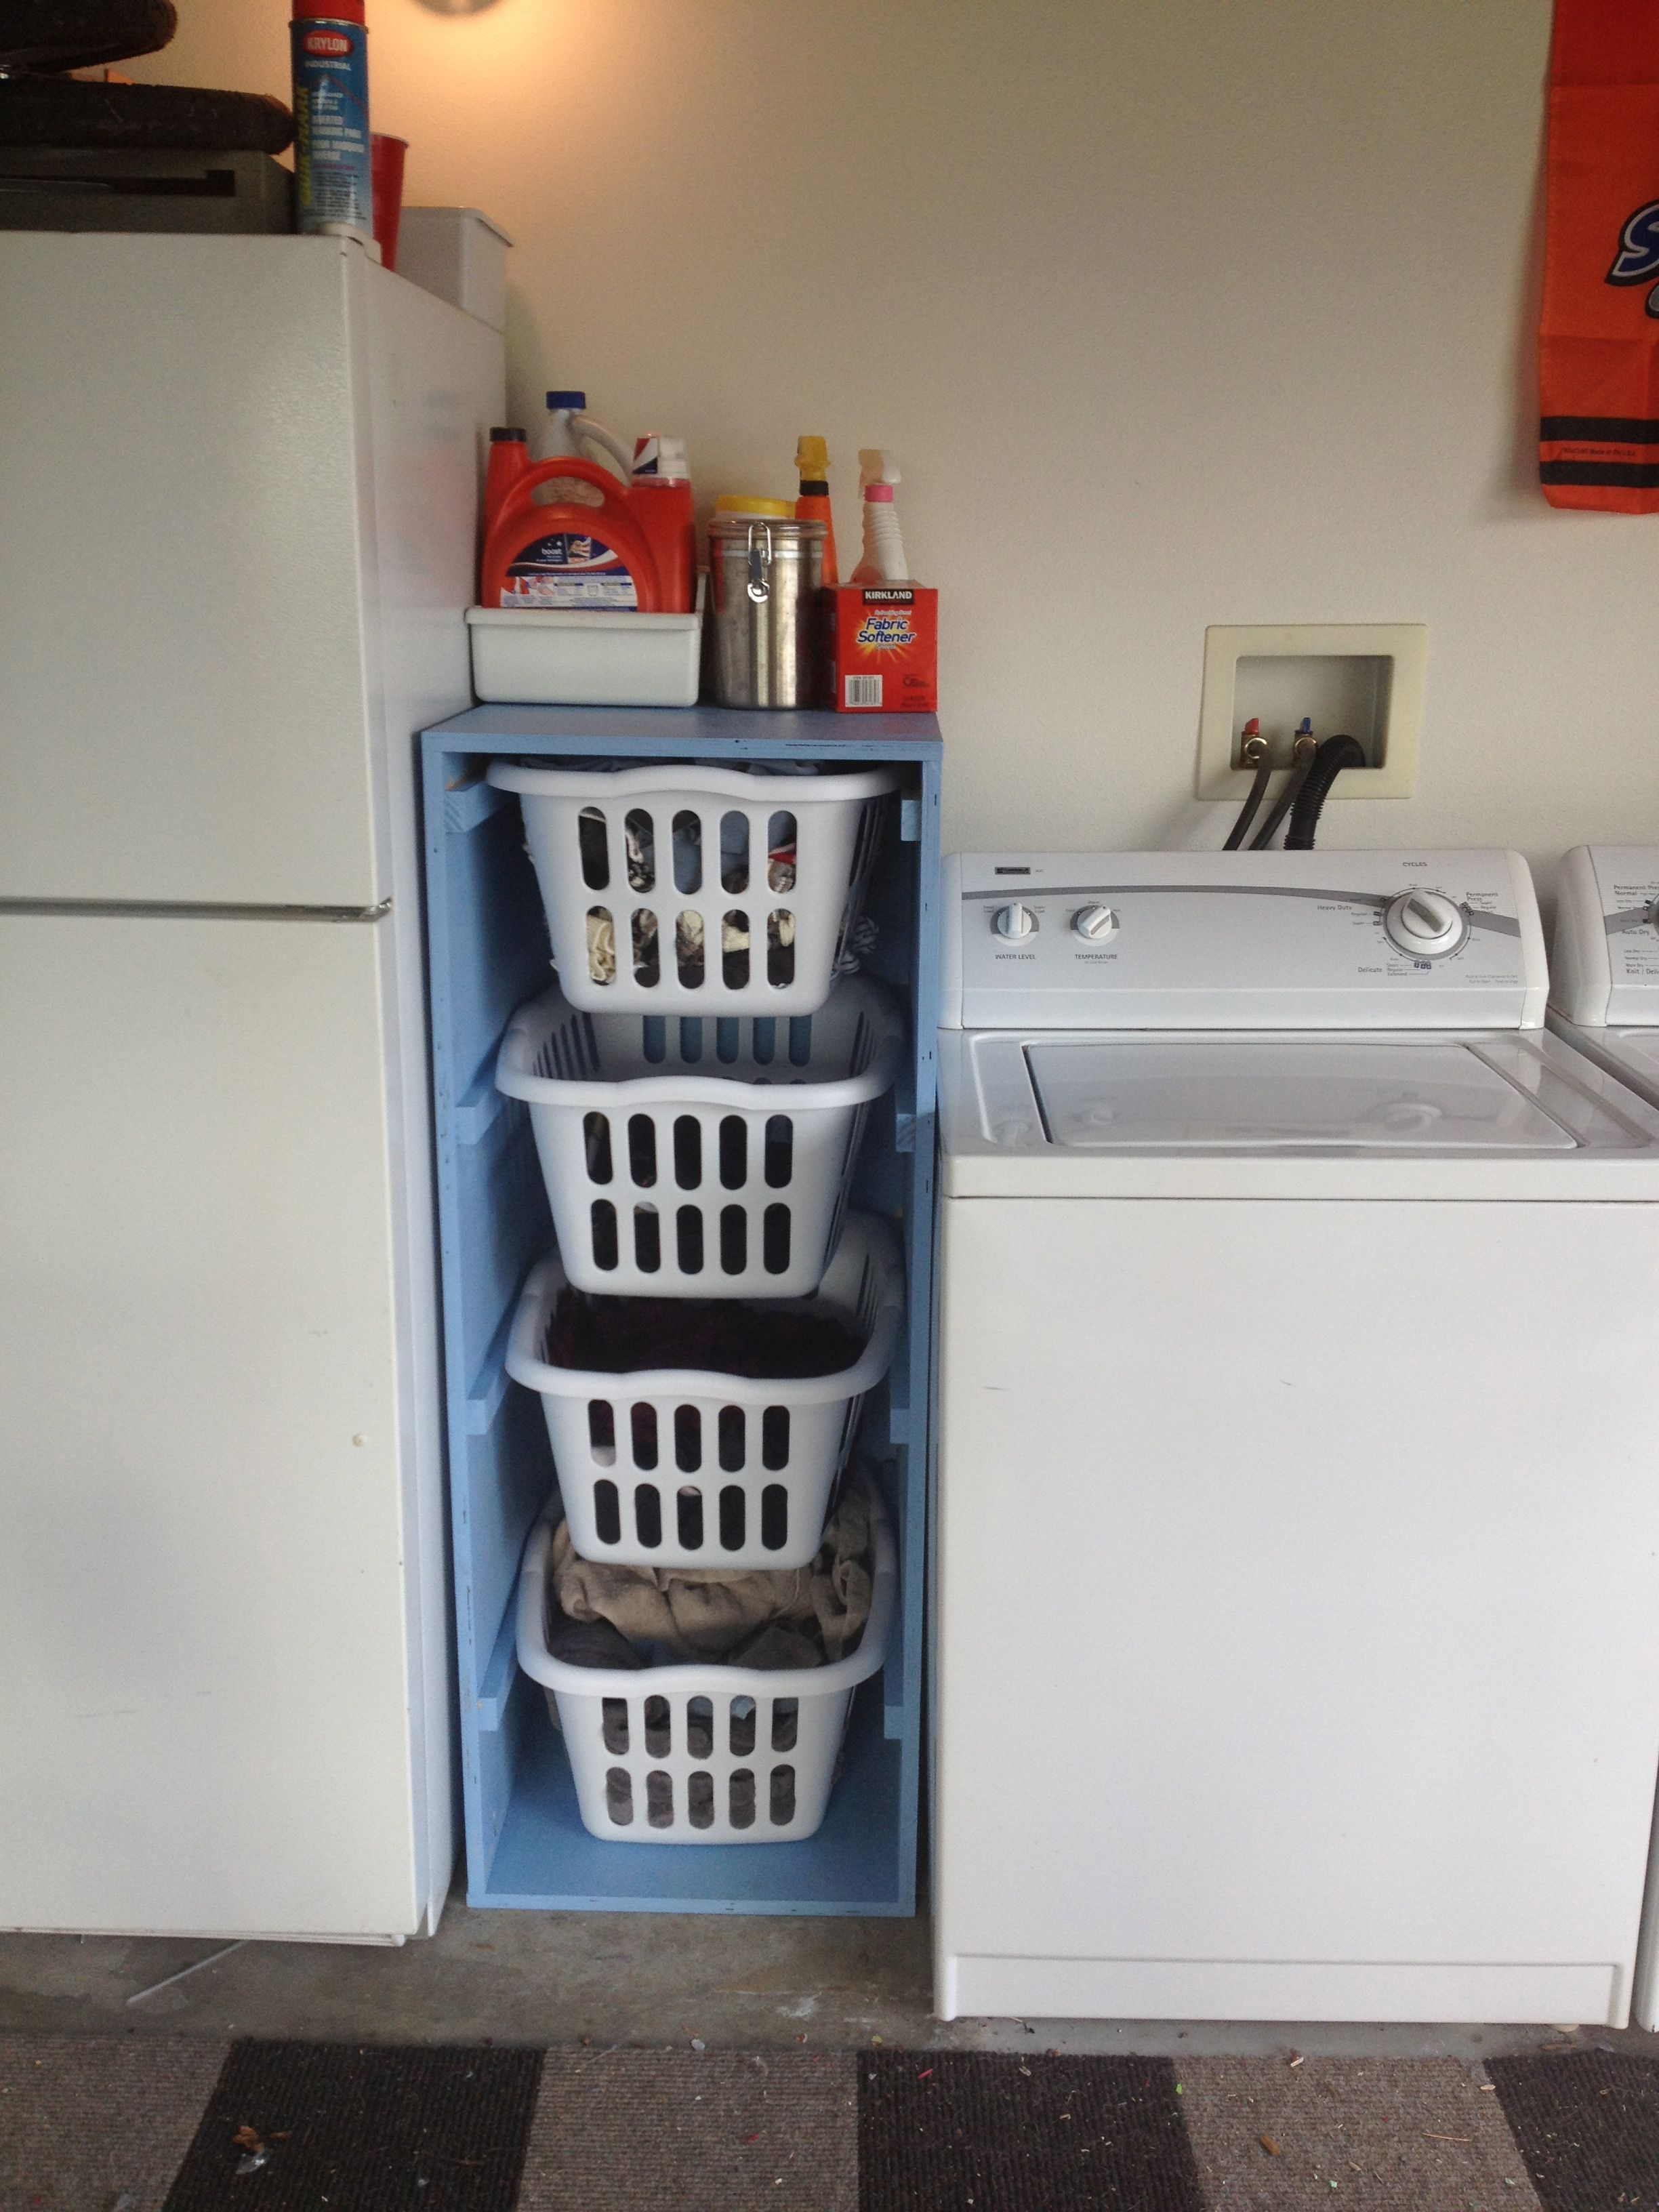 Laundry sorter do it yourself home projects from ana whiten laundry sorter diy projects solutioingenieria